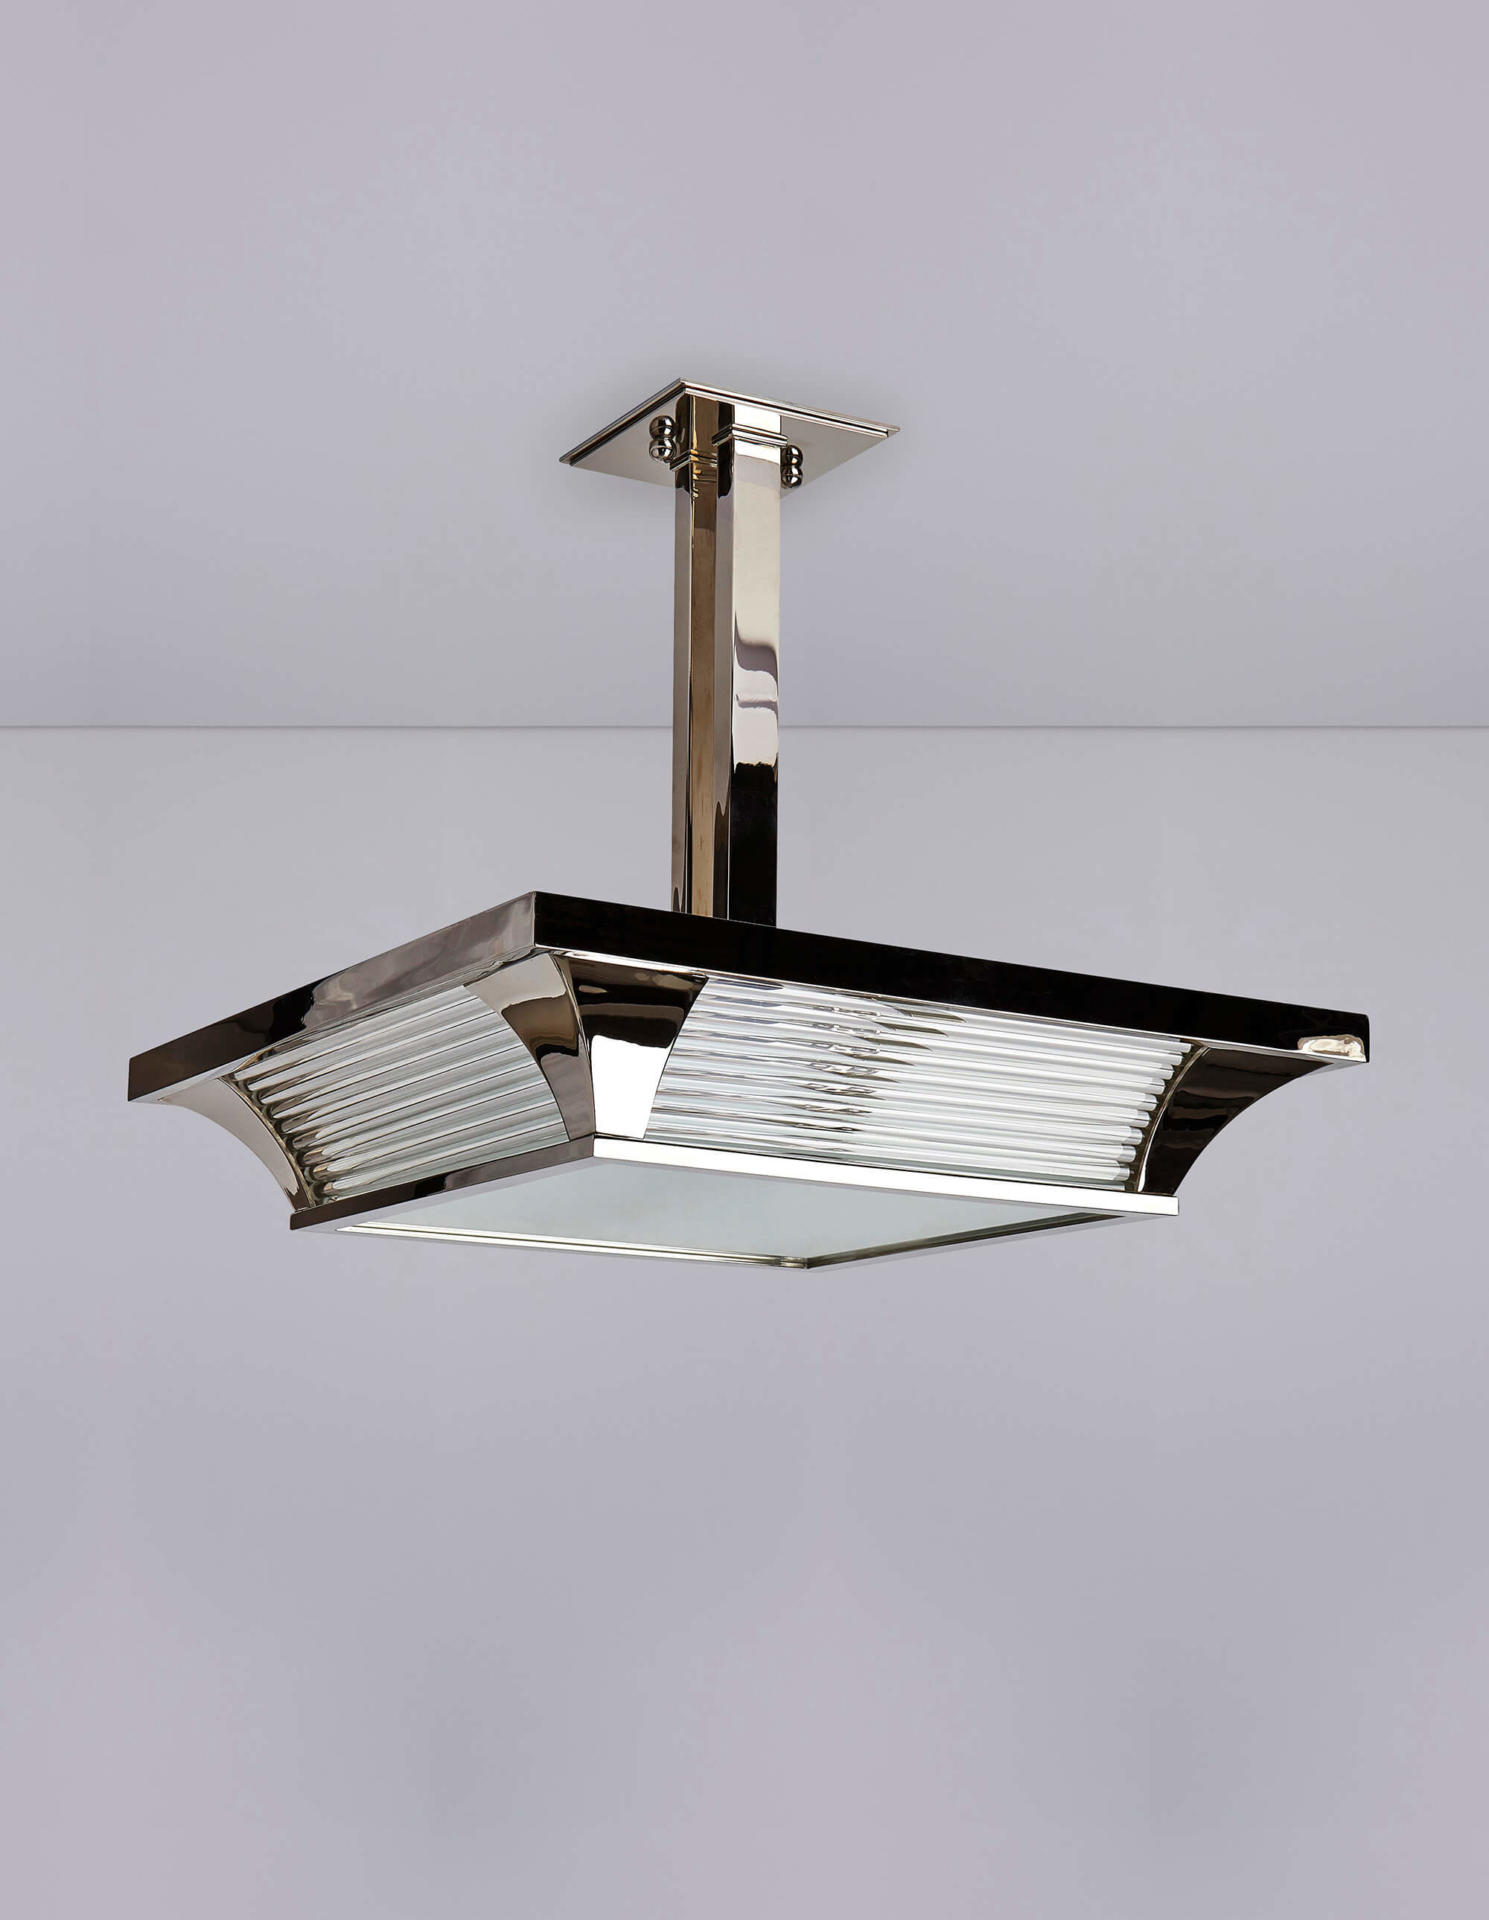 Square Odeon Plafonnier - an Art Deco inspired ceiling light by Collier Webb